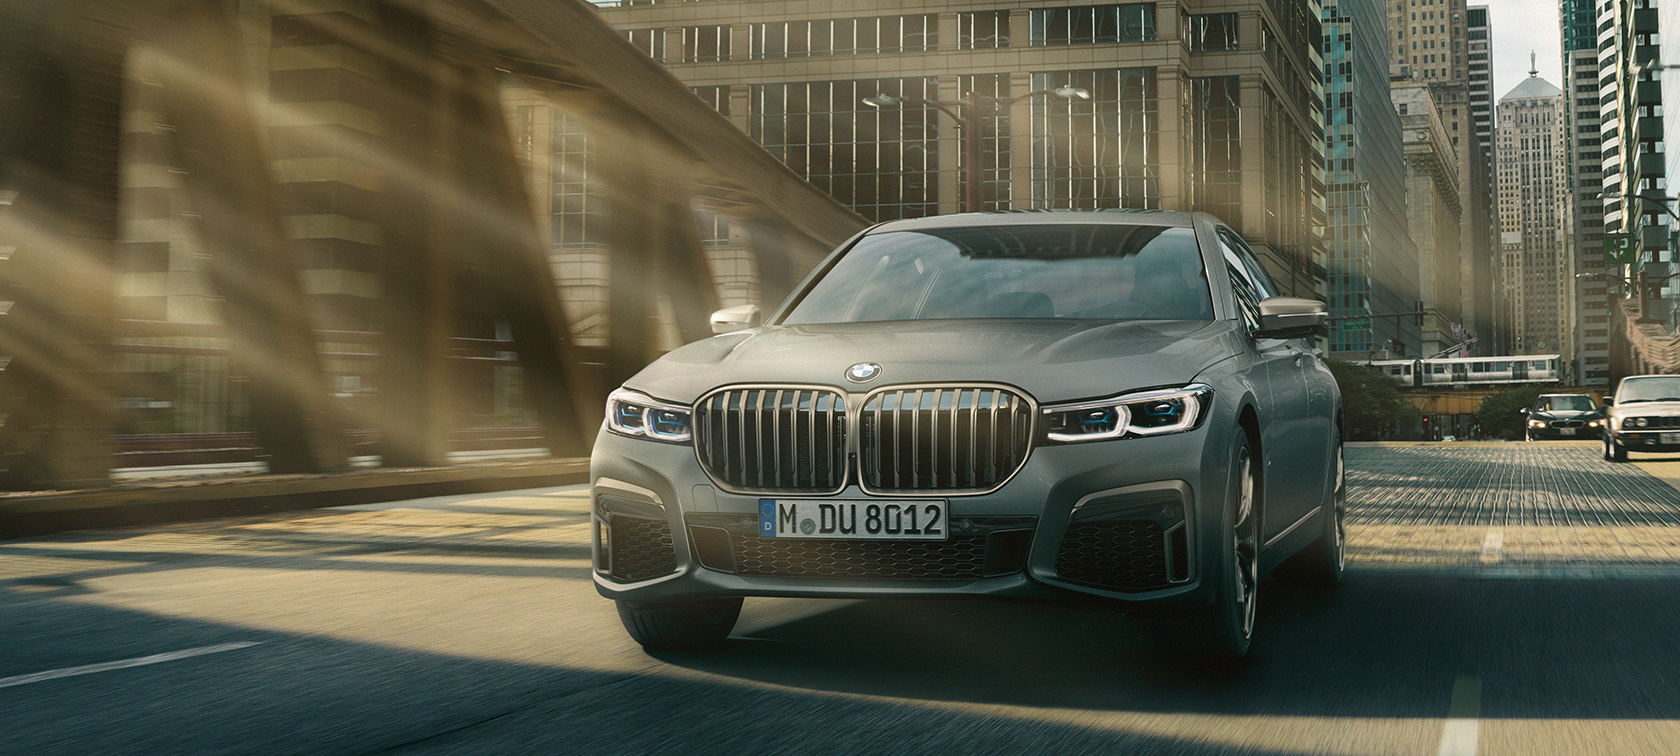 BMW M760Li xDrive Sedan, BMW M760Li specifications, technical data